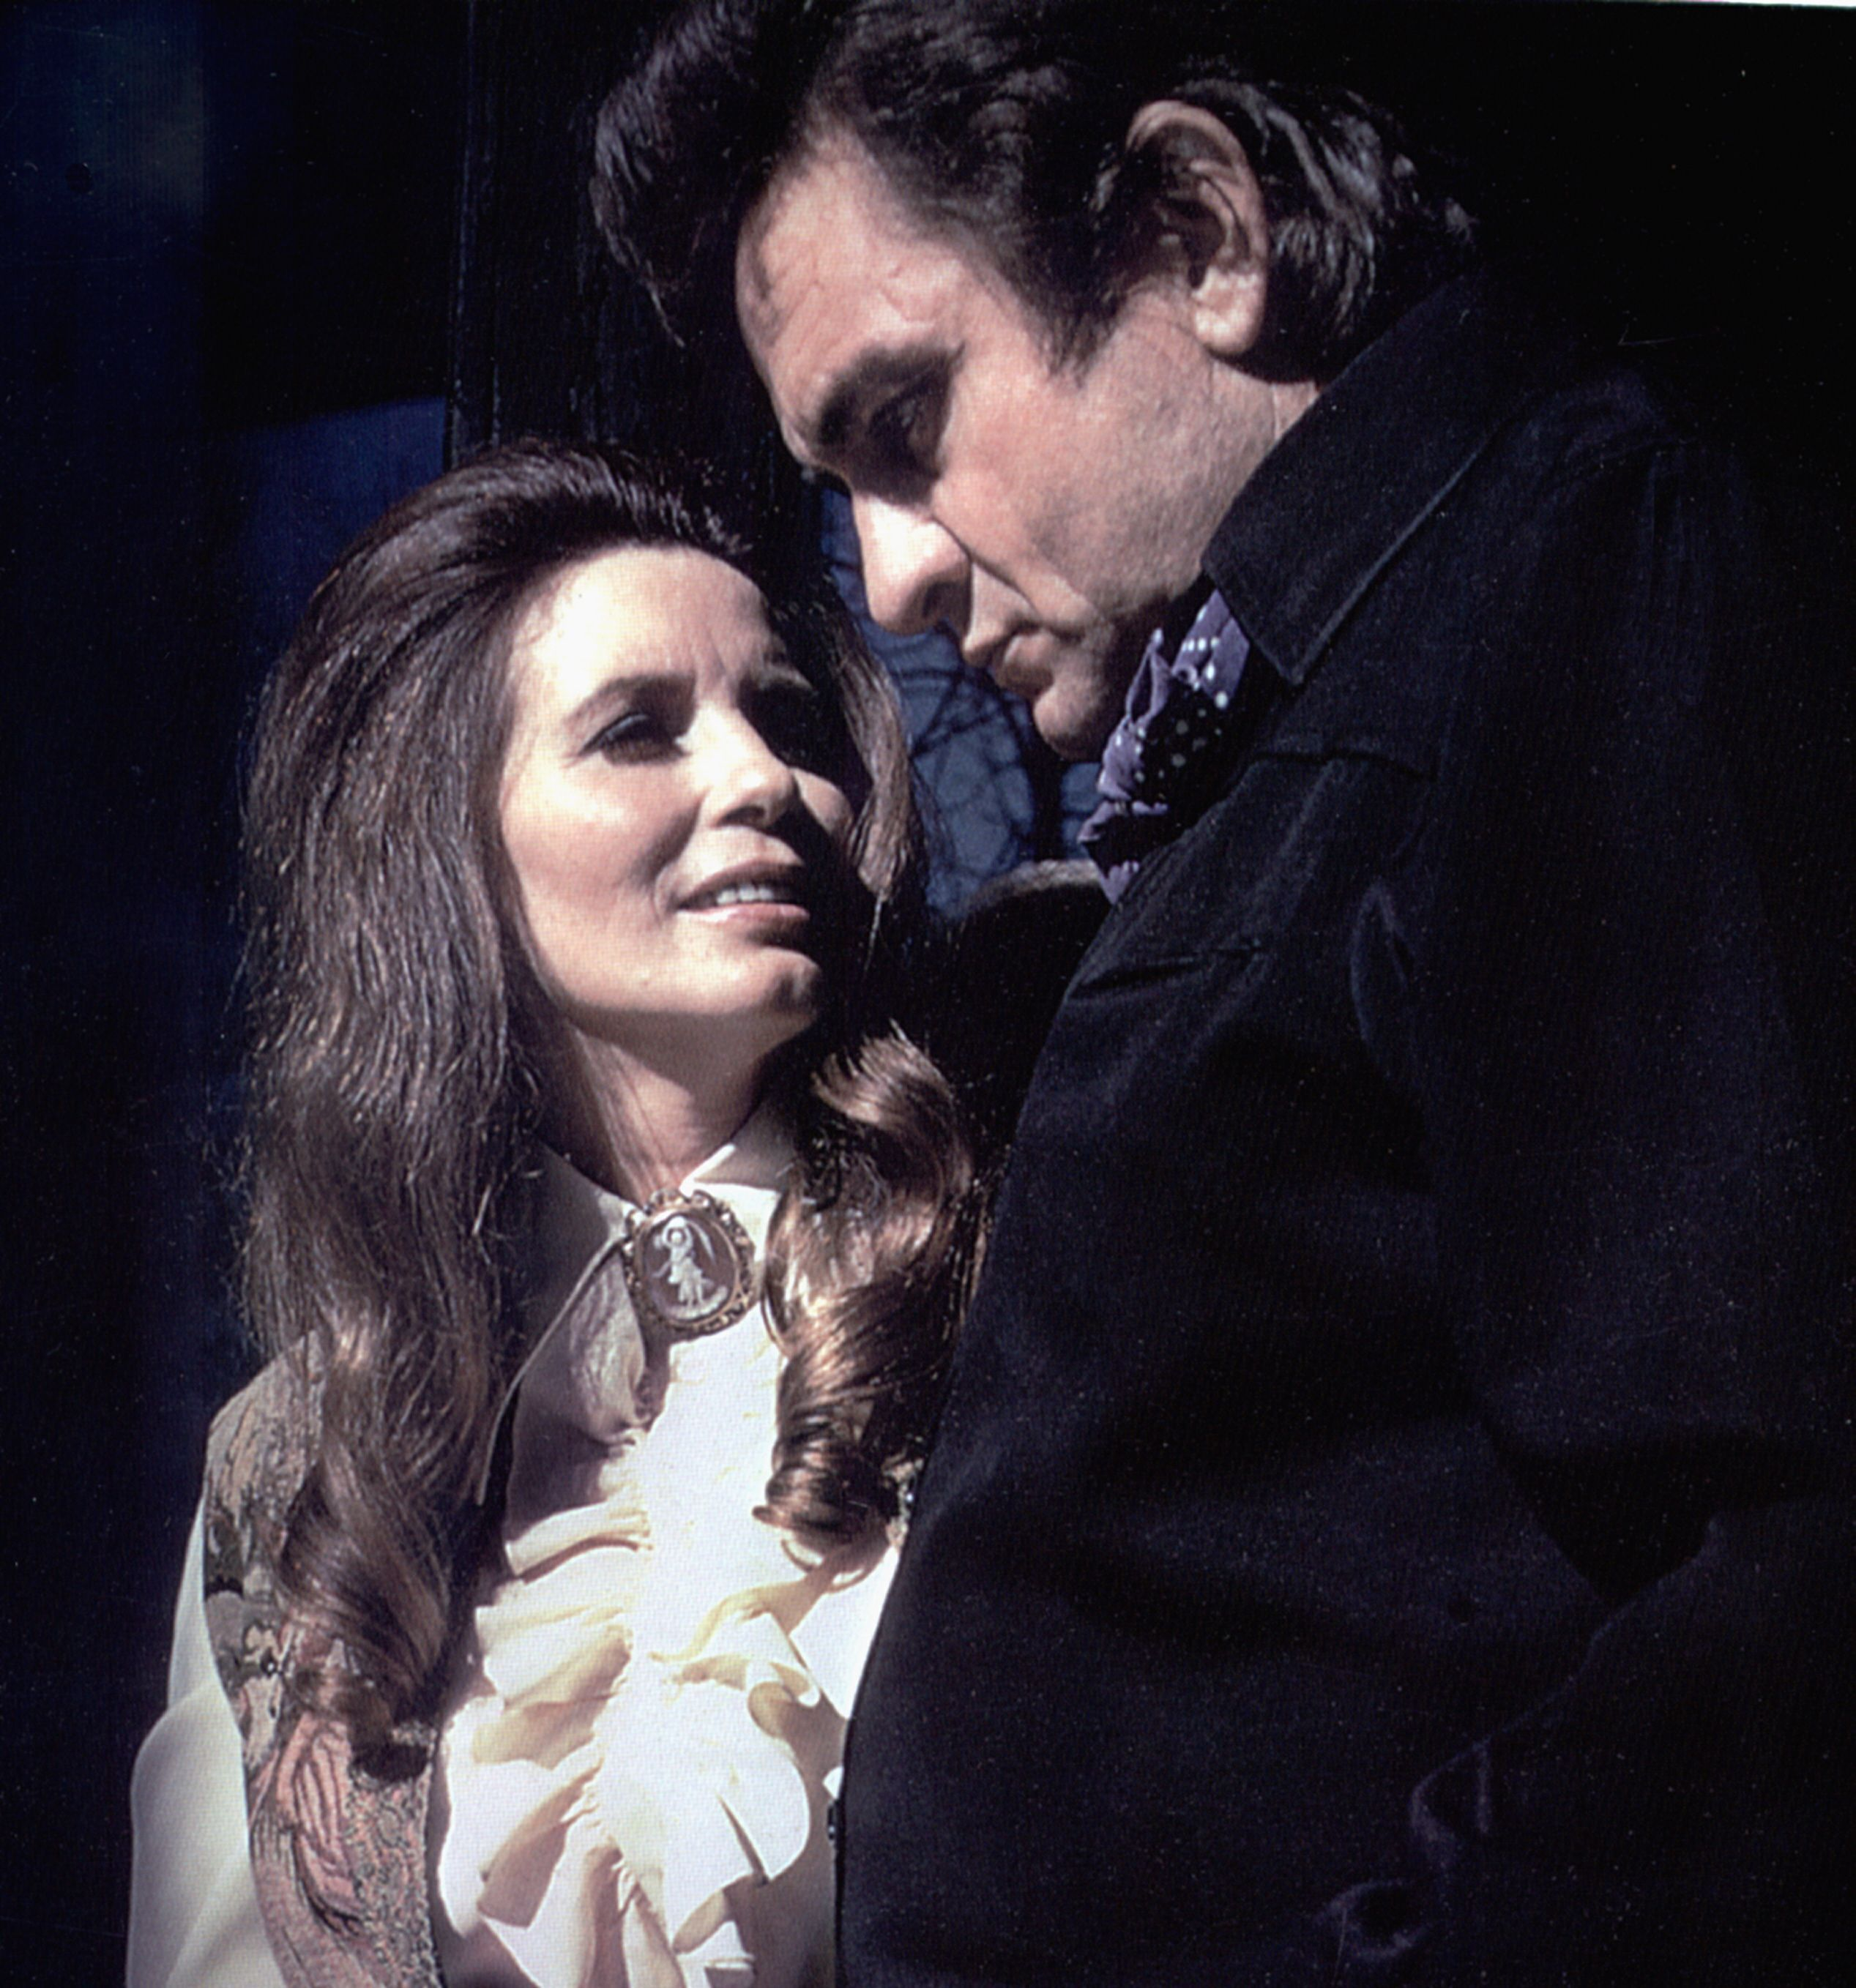 Video of johnny cash proposing to june carter on stage